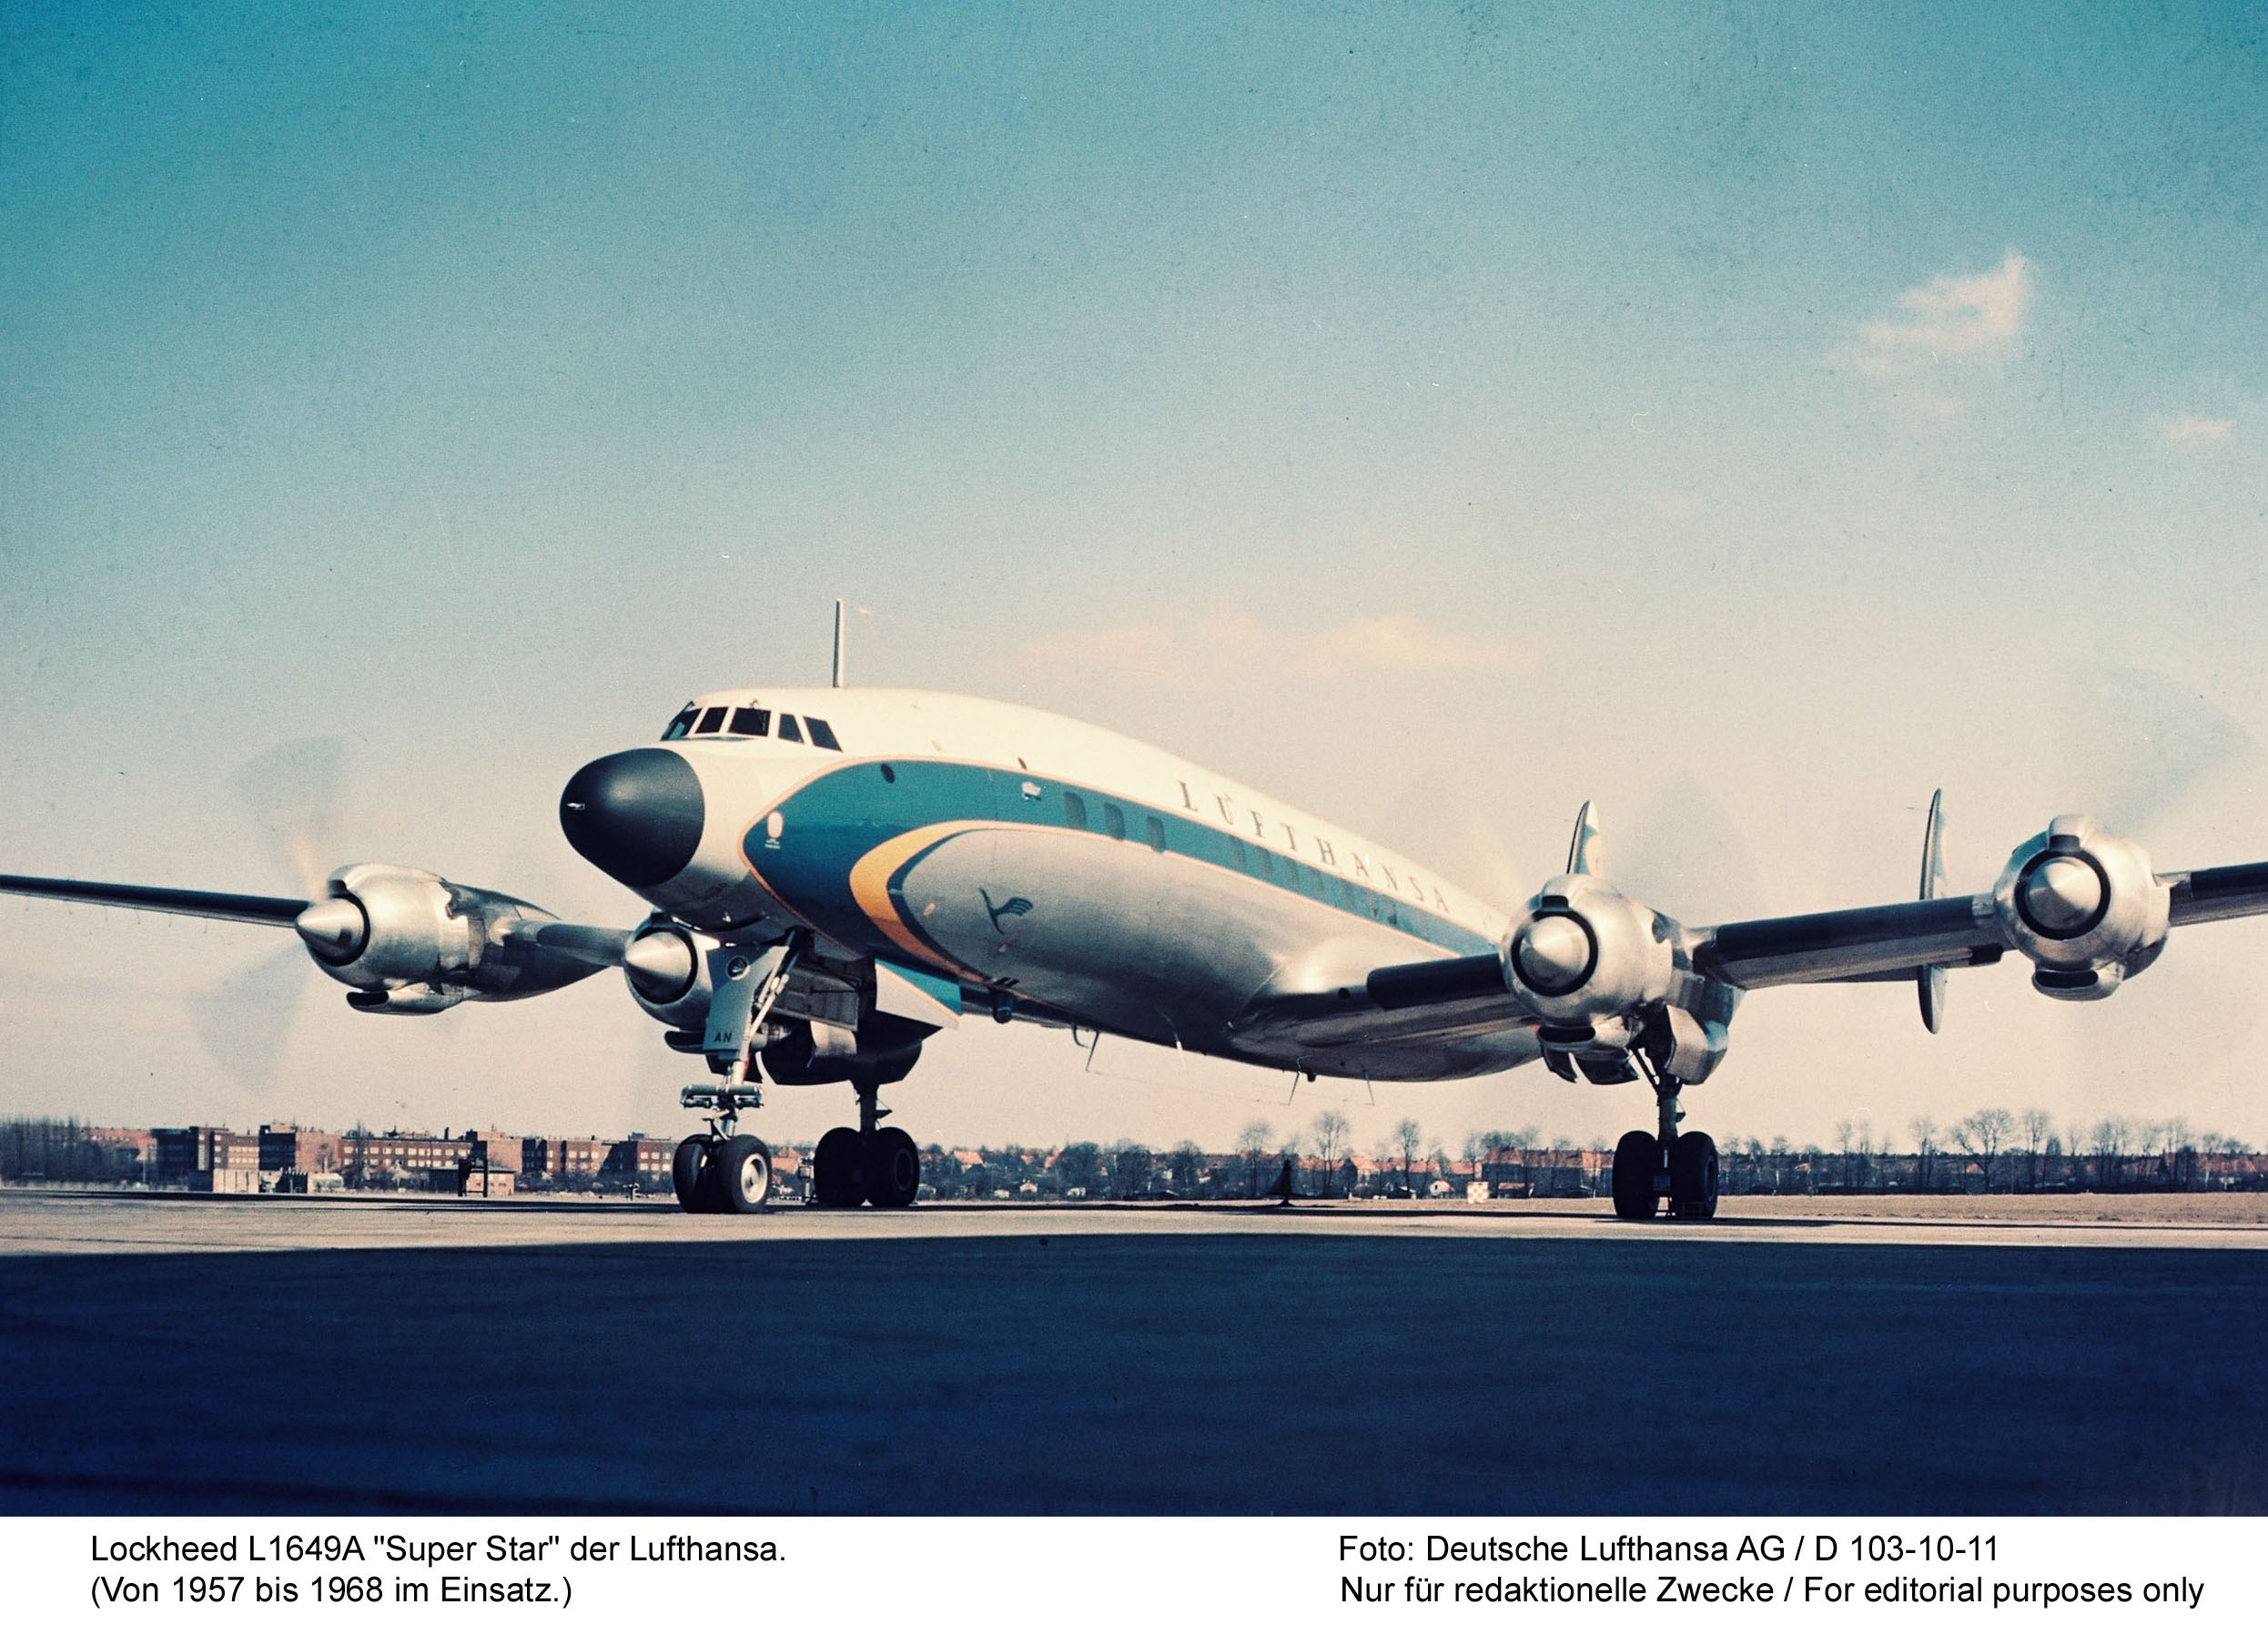 Another beautiful image of a Lufthansa Super Star. (Deutsche Lufthansa image via Wolfgang  Borgmann)